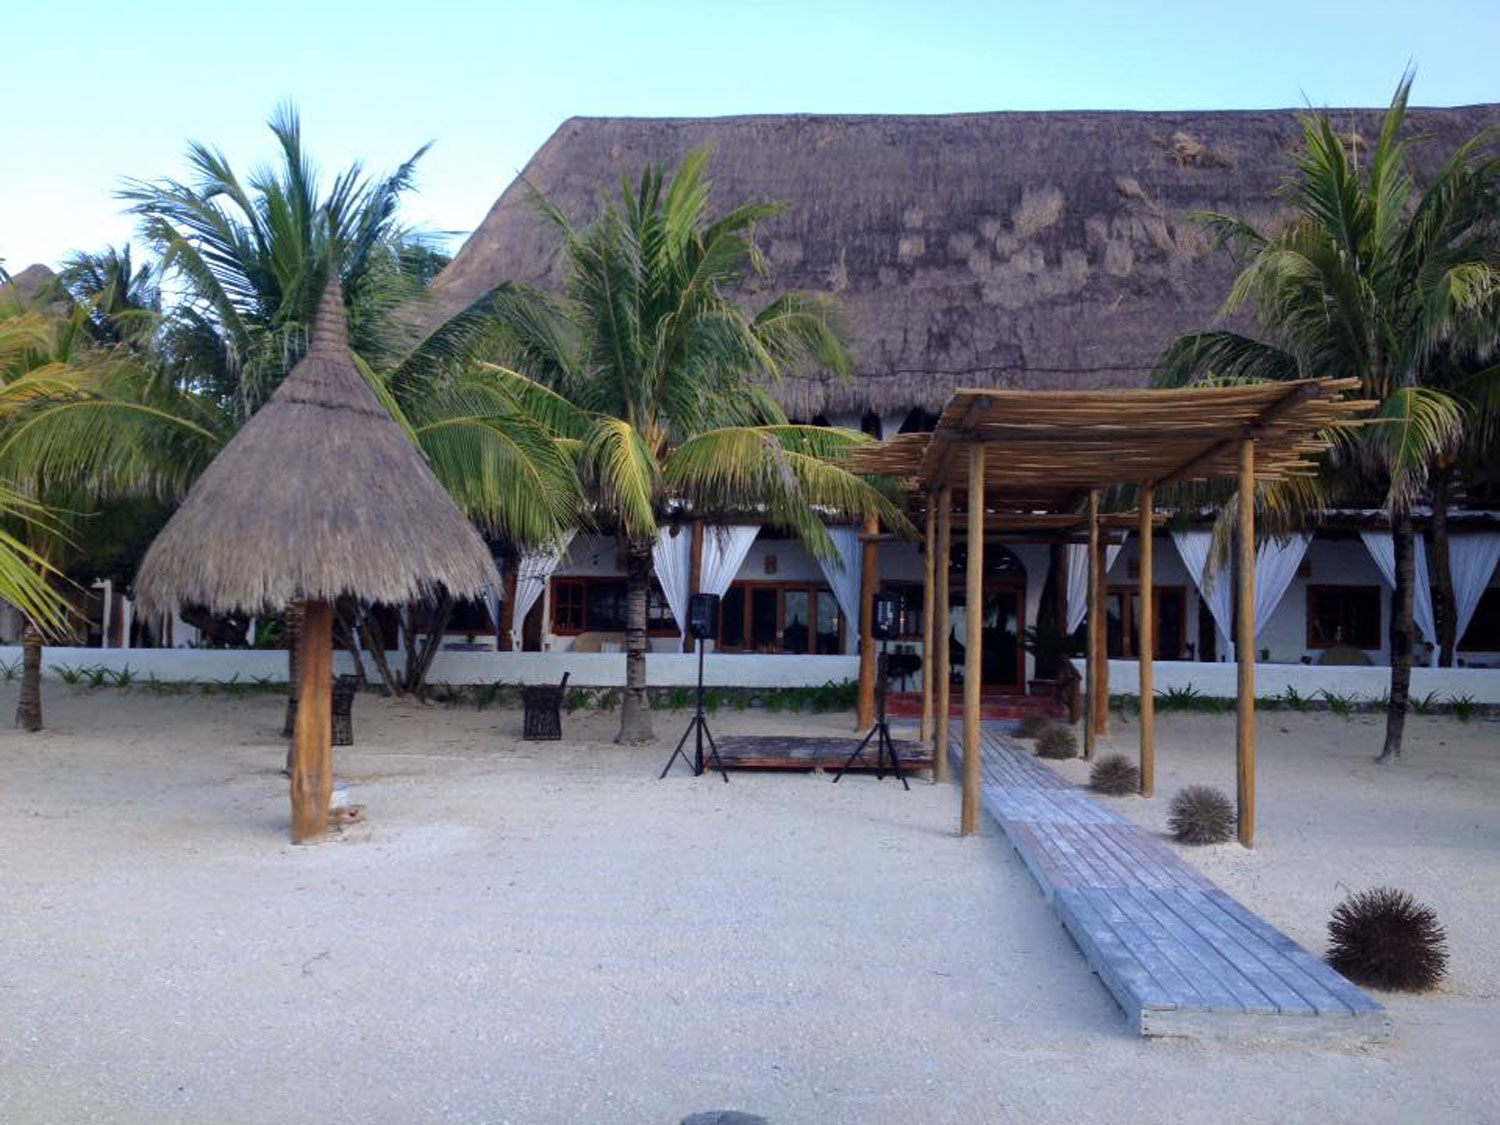 Hammocks_and_Ruins_Riviera_Maya_What_to_Do_Cancun_Playa_Del_Carmen_Islands_Isla_Holbox_27.jpg